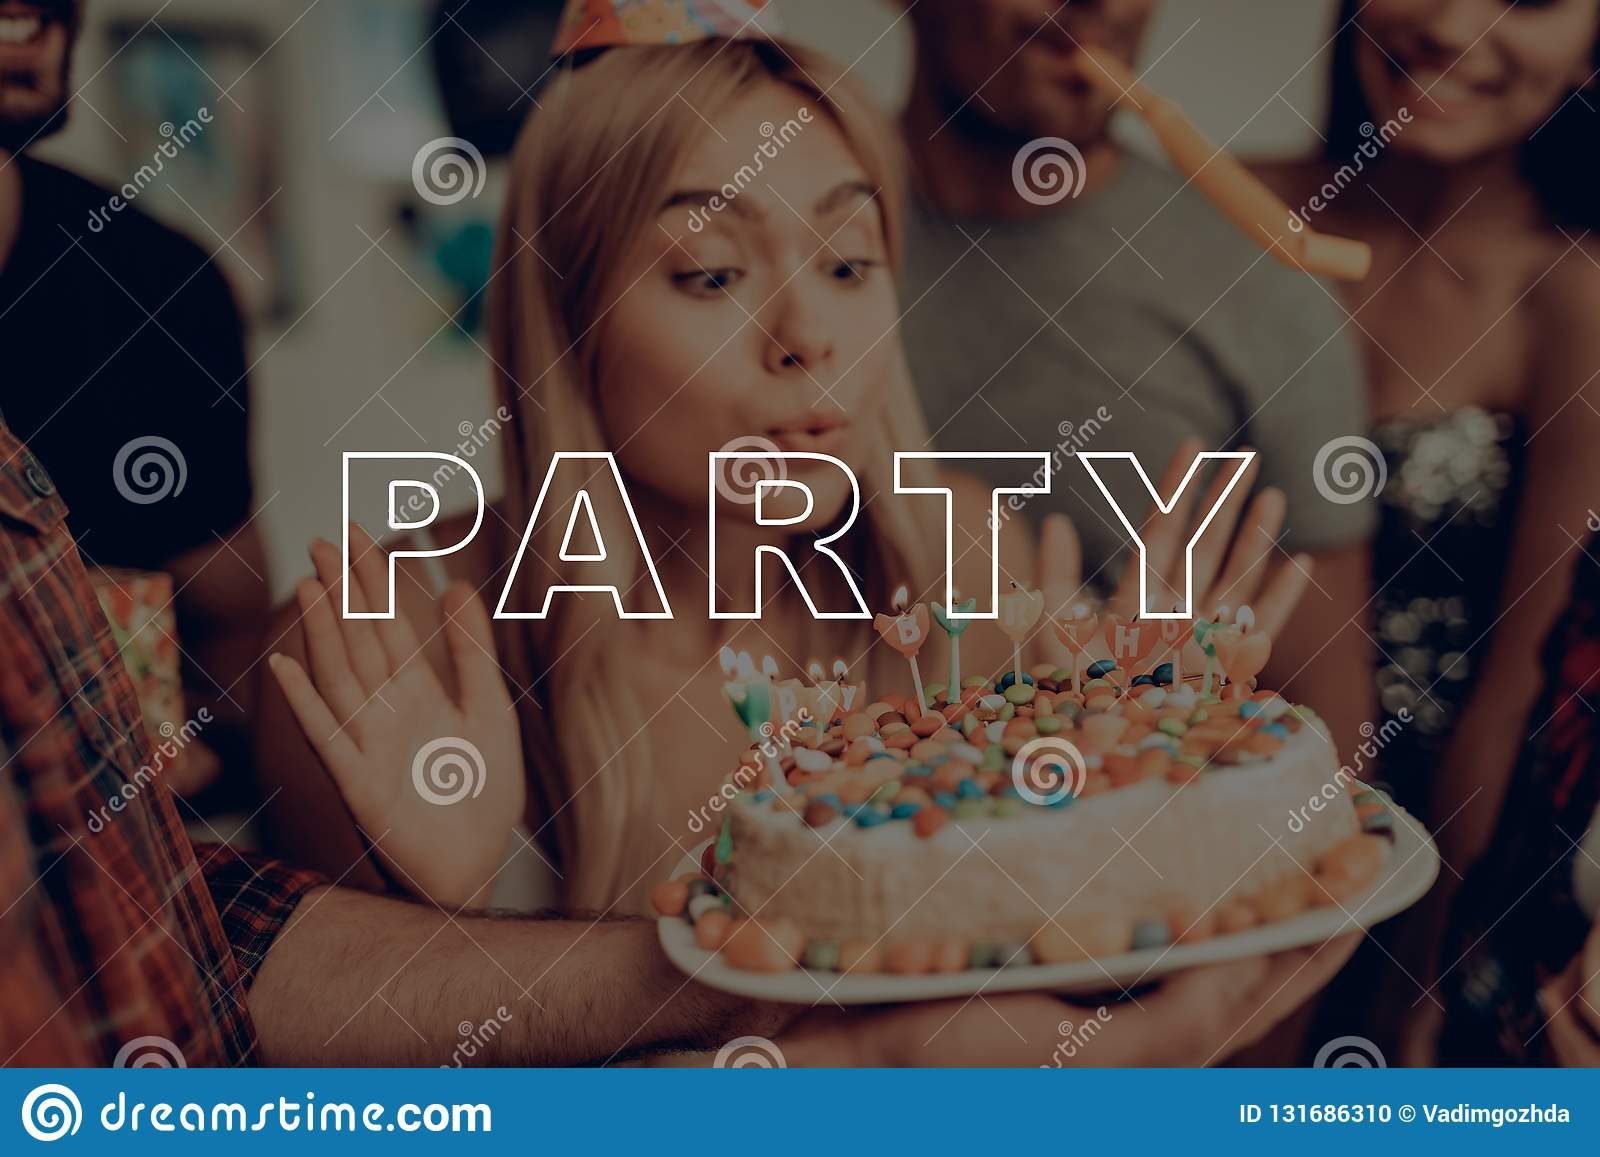 Tremendous Guys Having Fun Birthday Girl Blows Out Candles Stock Photo Funny Birthday Cards Online Alyptdamsfinfo